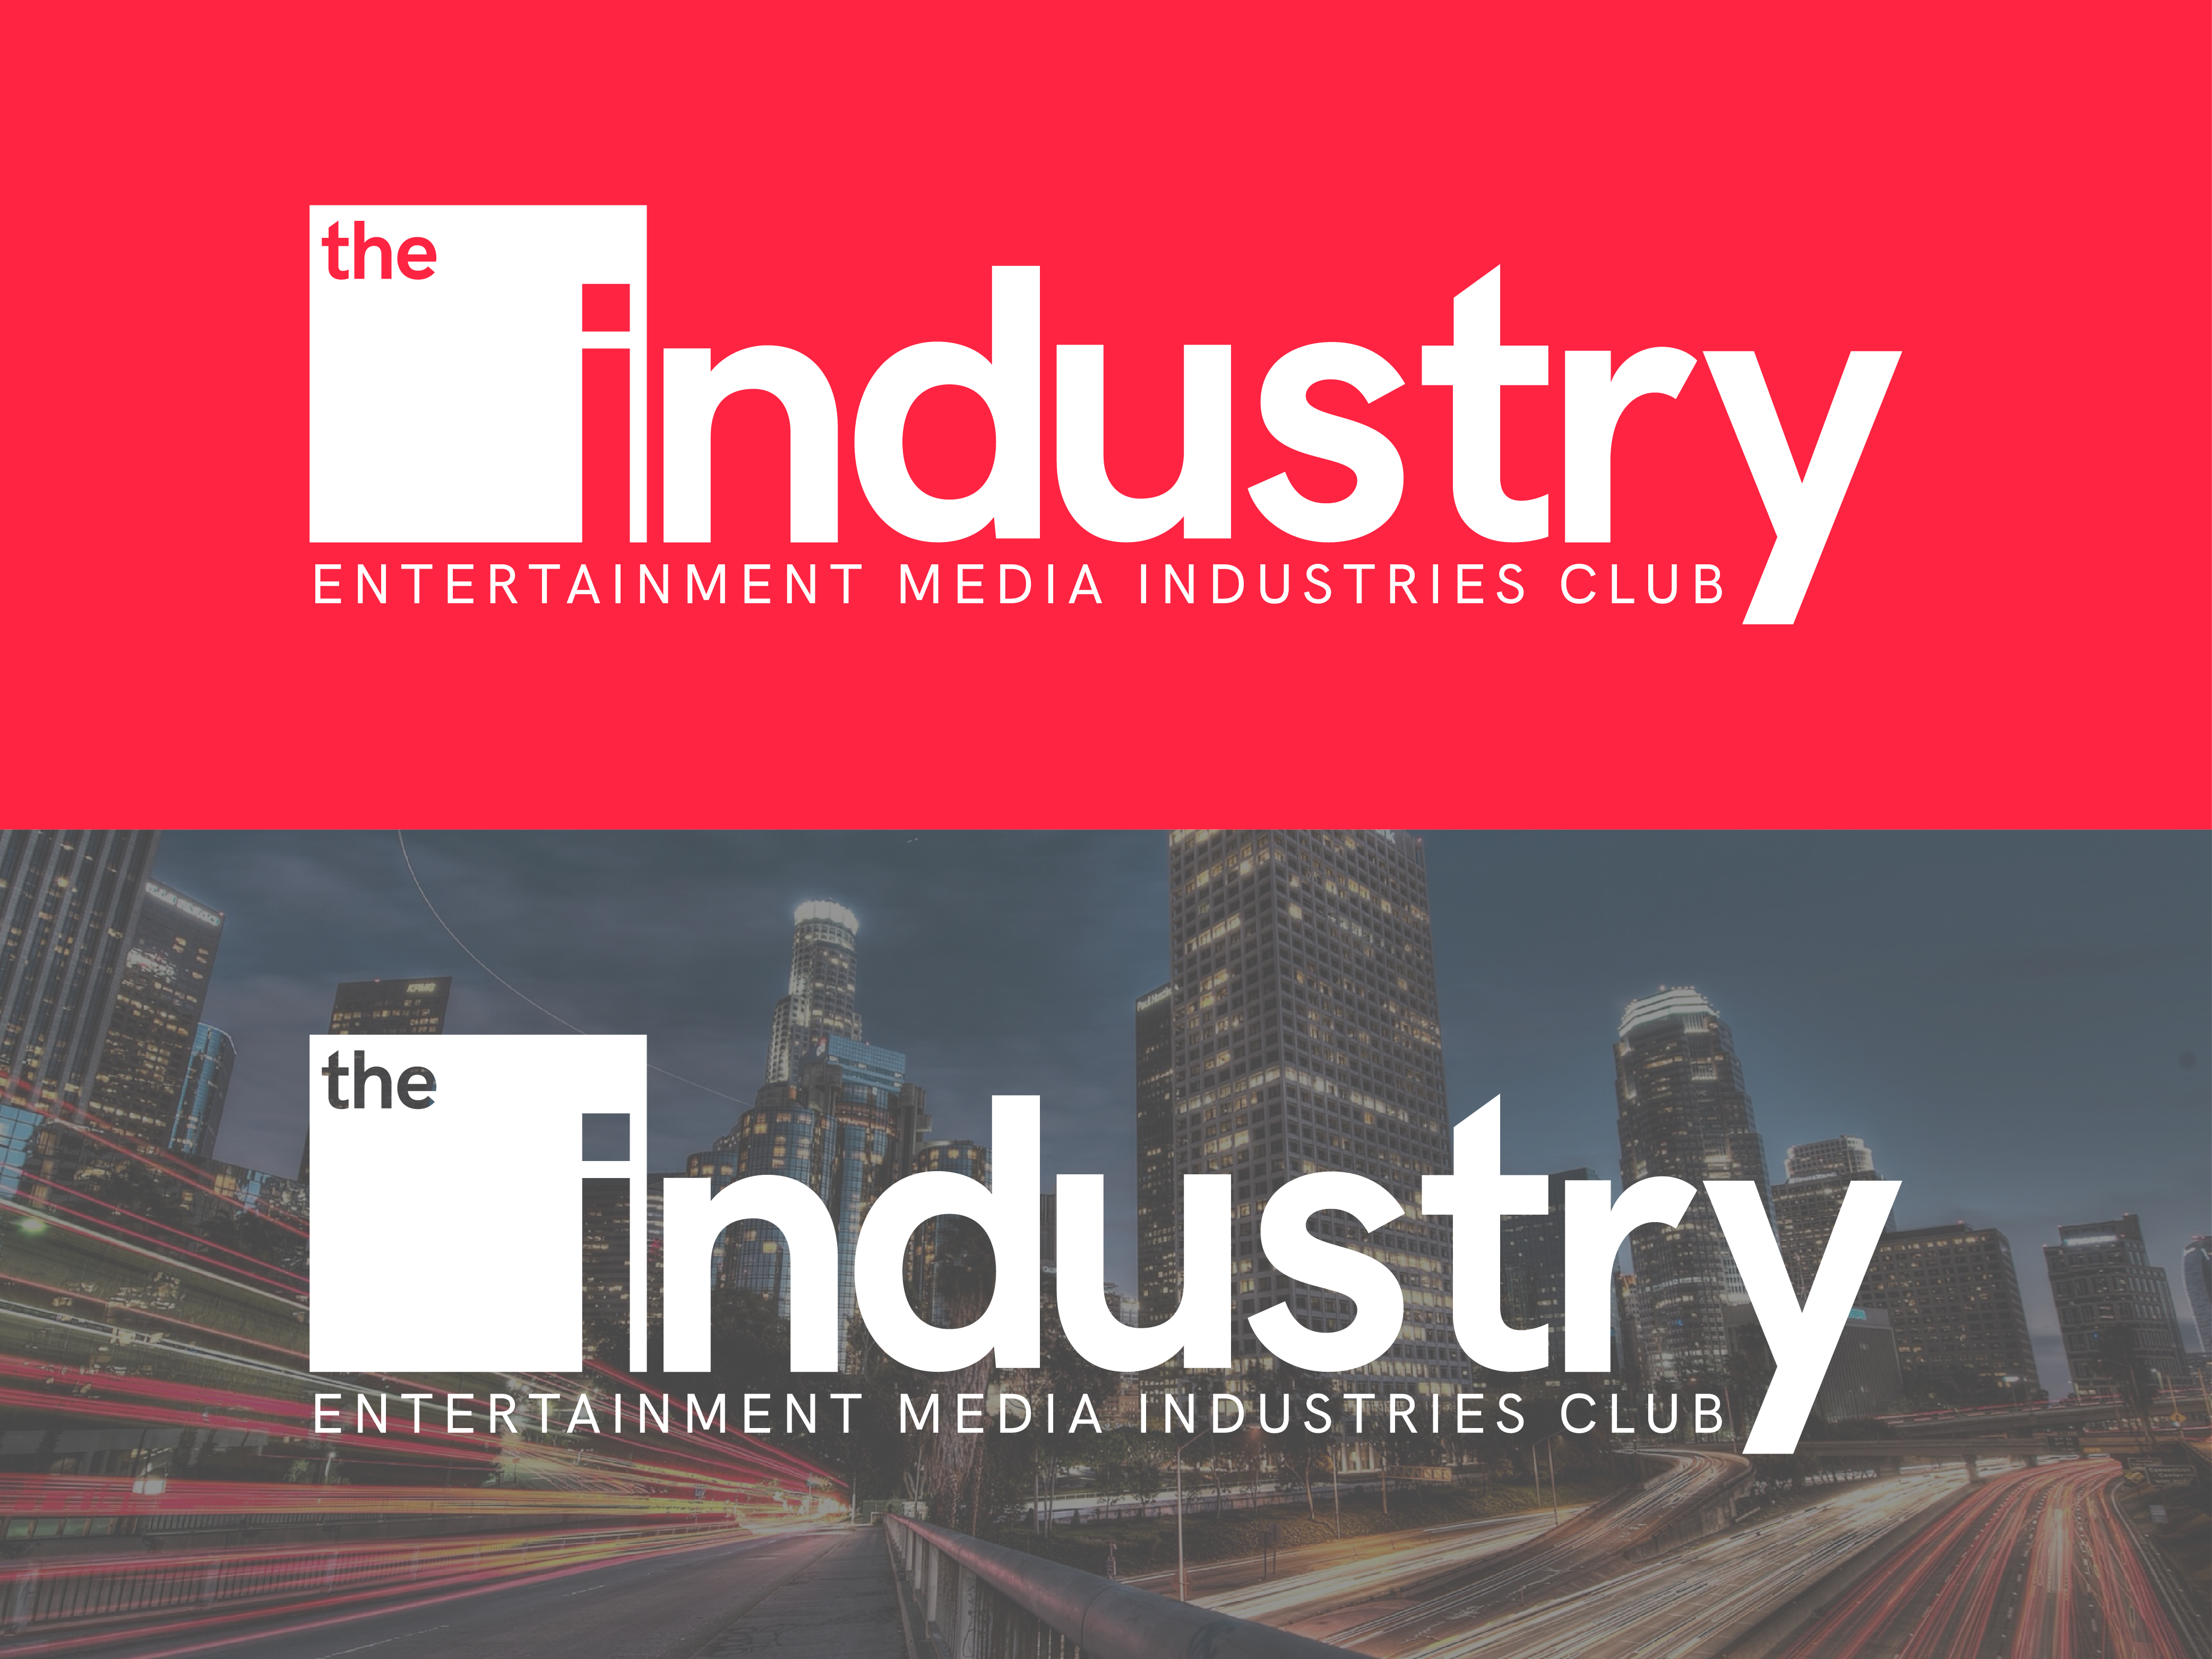 The Industry wordmark on two backgrounds